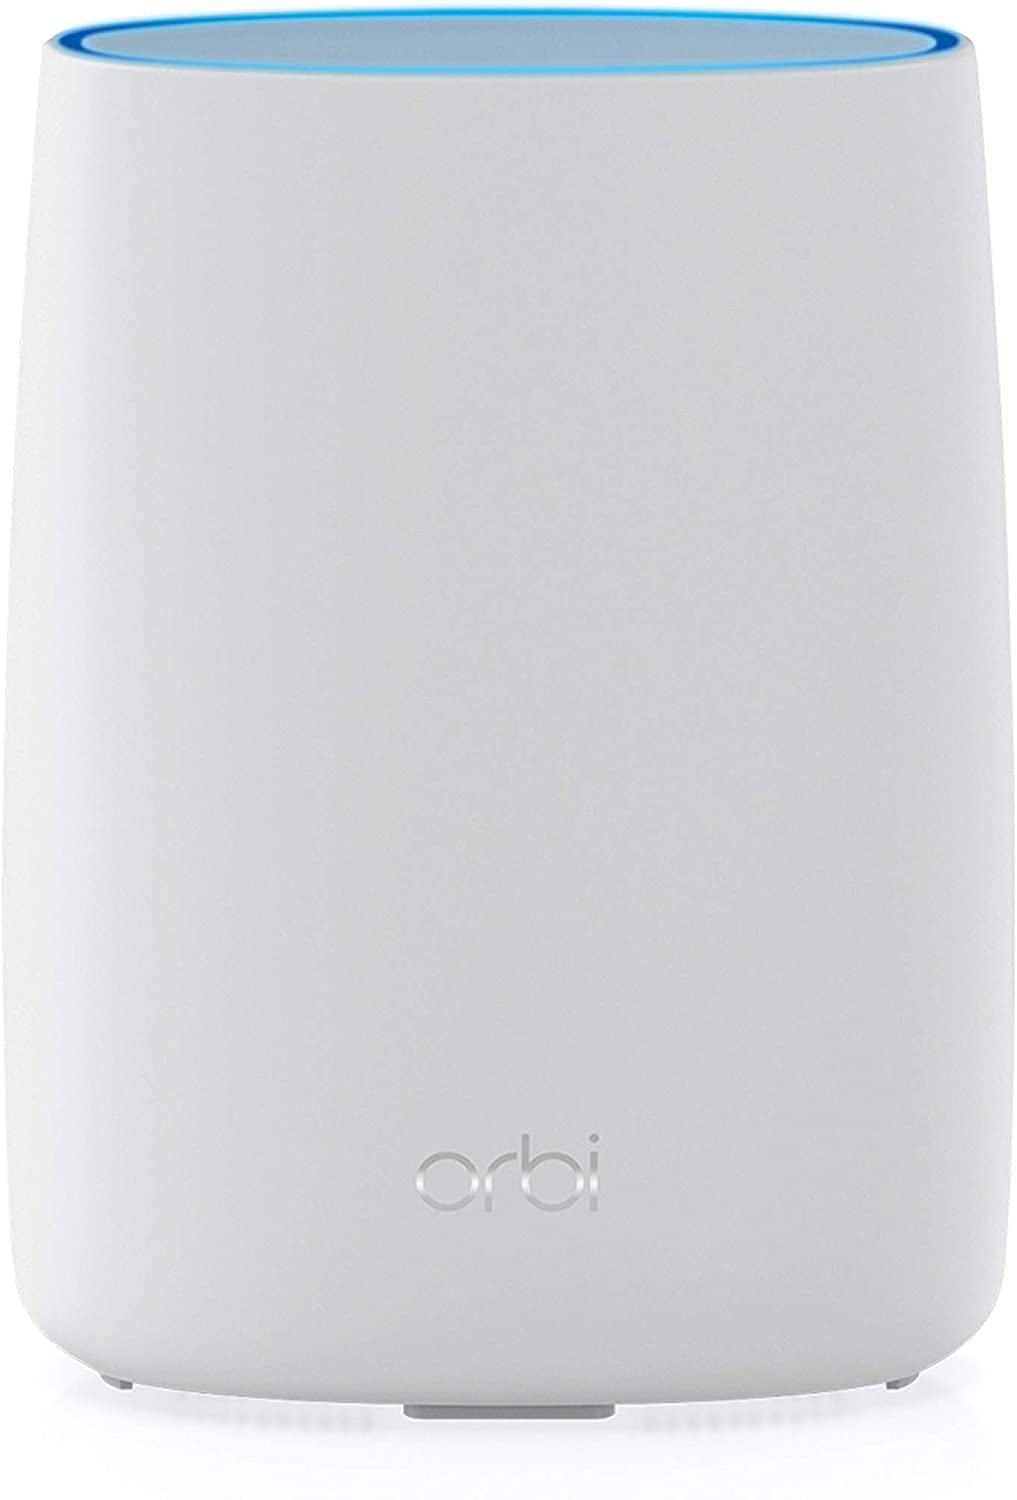 NETGEAR Orbi Tri-Band WiFi Router with 4G LTE Modem Built-in (LBR20) for Primary or Backup Internet | Supports AT&T | Coverage up to 2,000 sq. ft. | AC2200 WiFi (LBR20-100NAS)